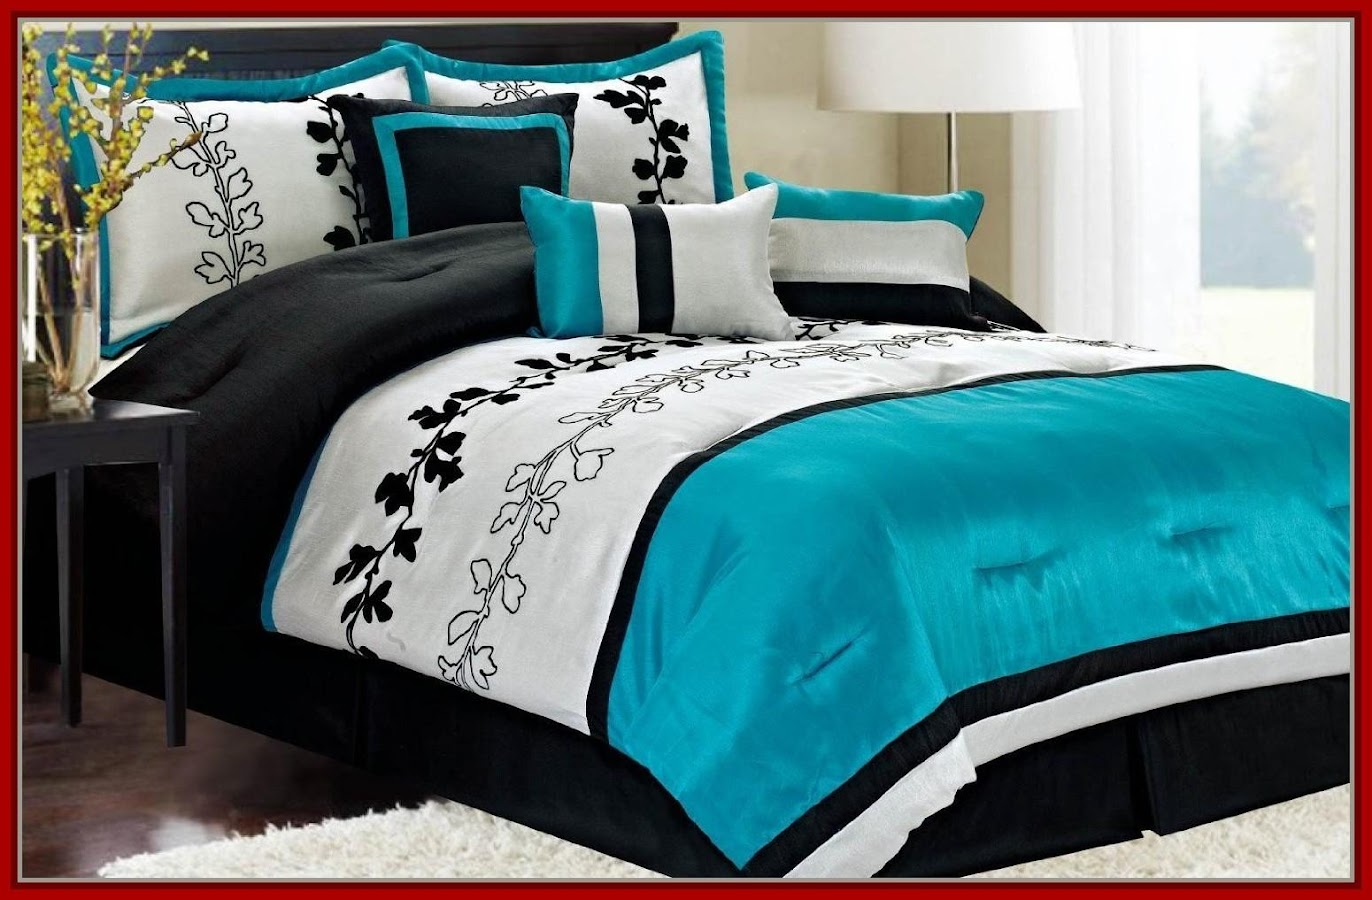 Bed sheet designs pictures - Bed Sheet Designs Screenshot